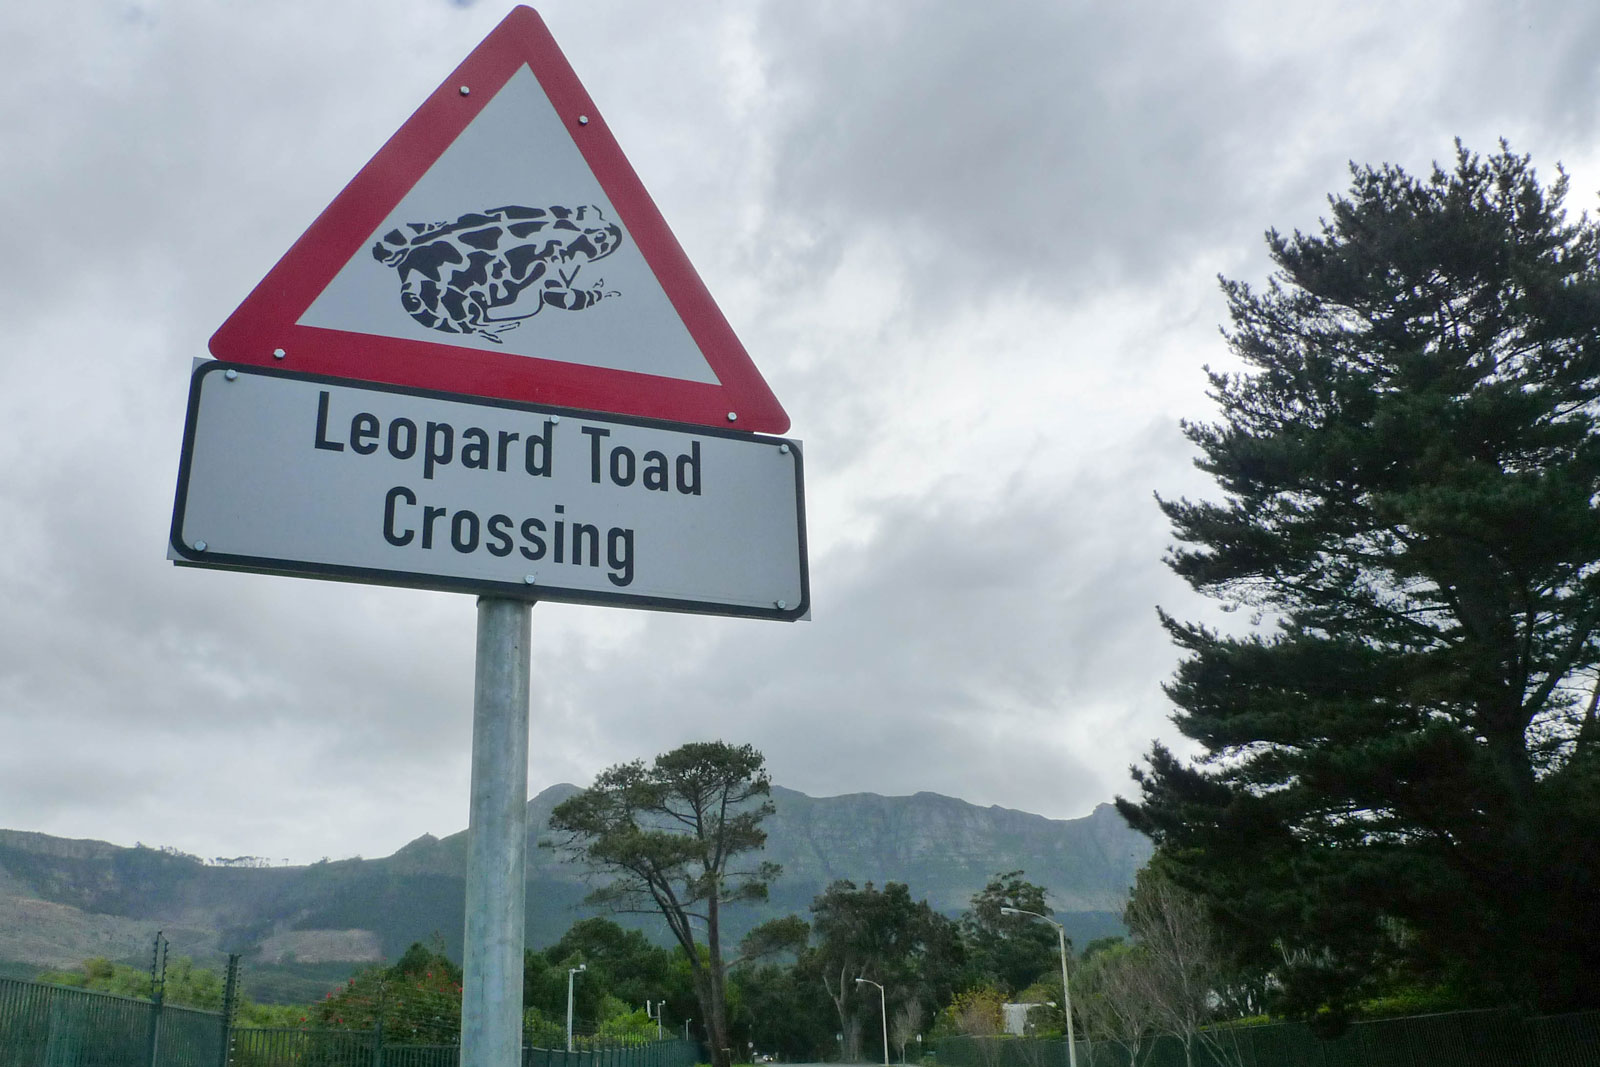 loved the nature-friendly signs in Cape Town